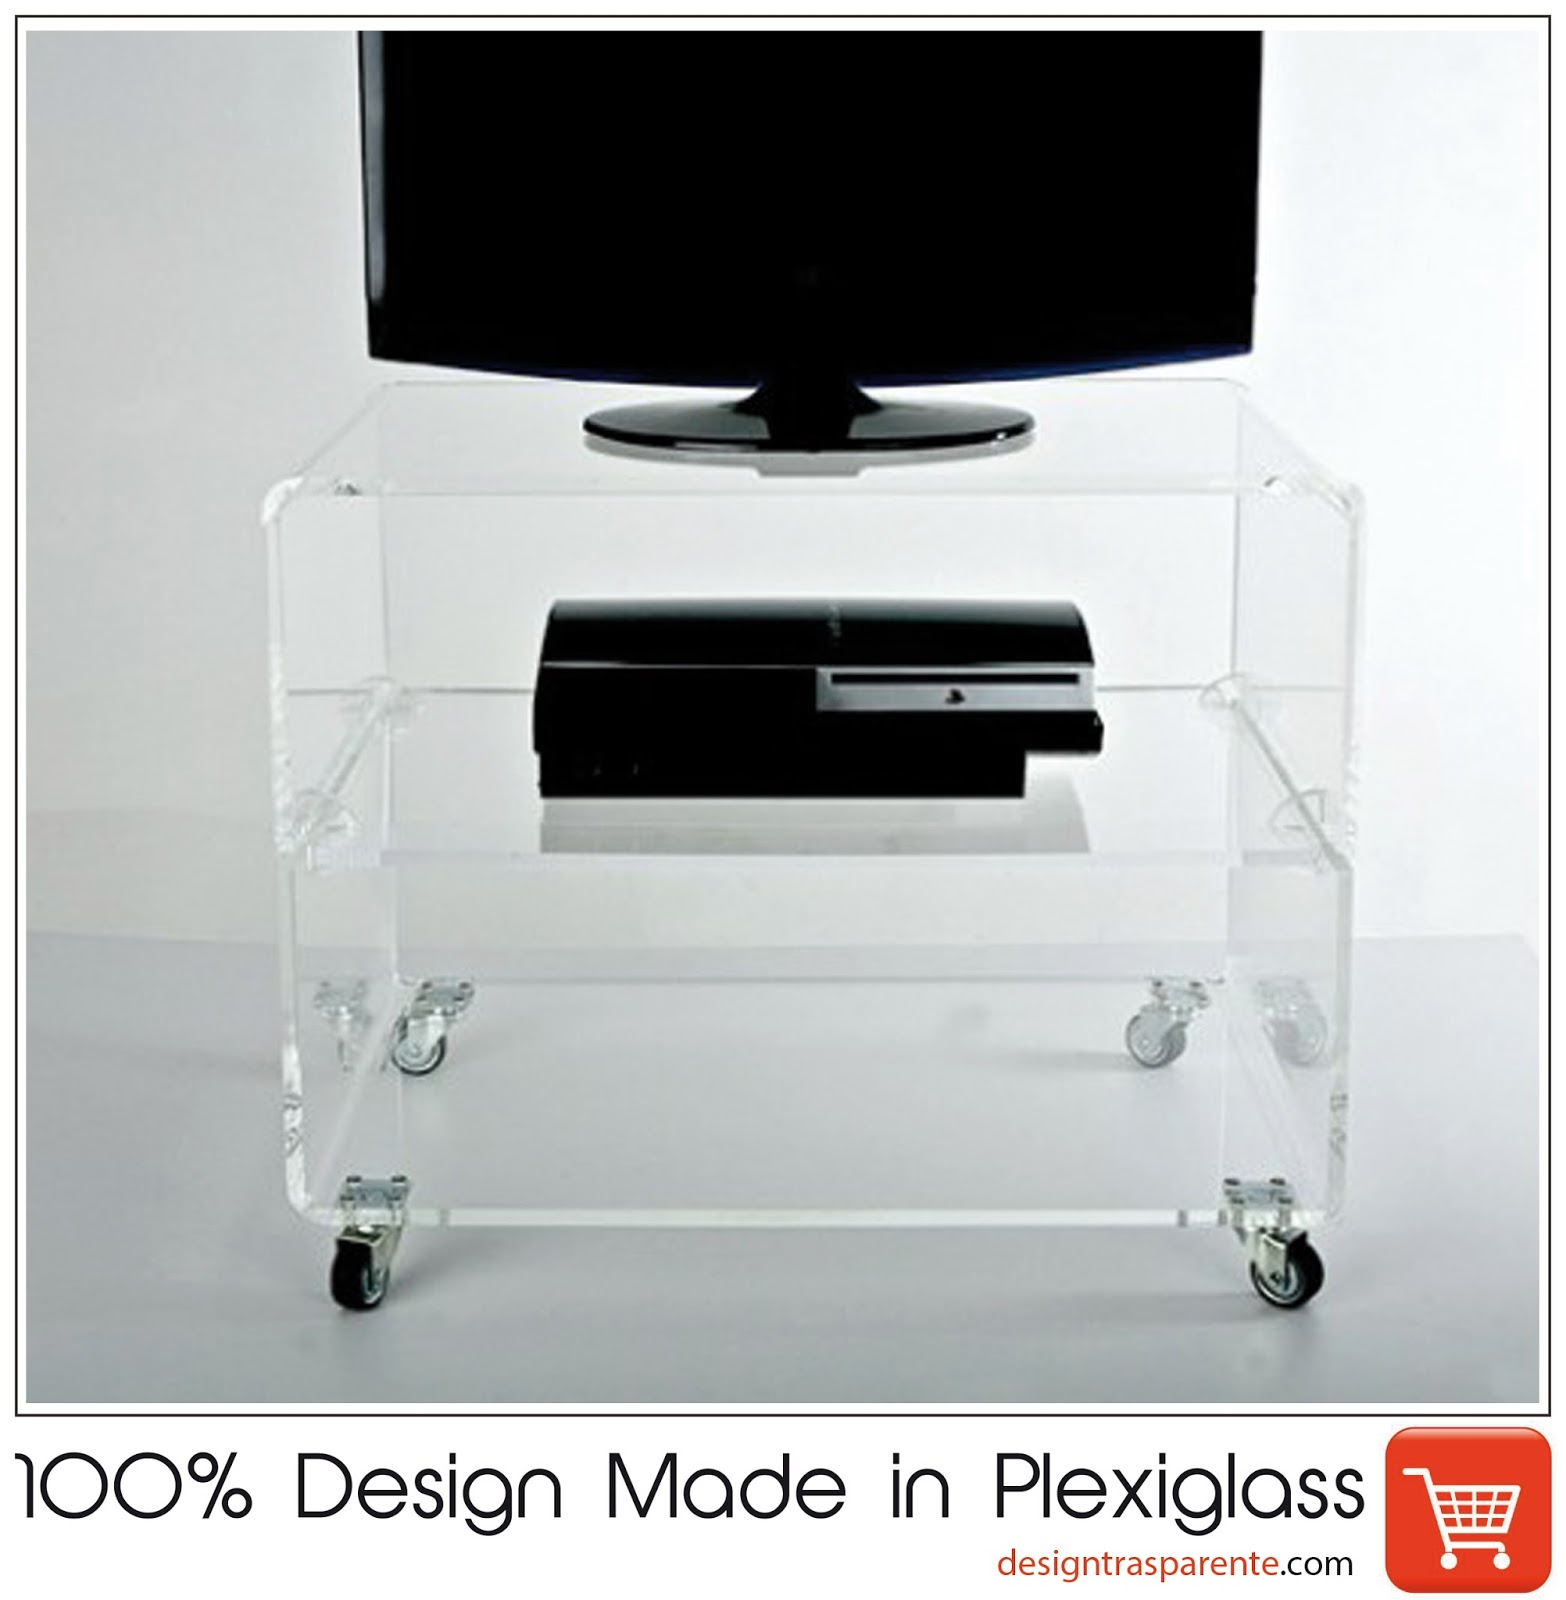 Pillole in plexiglass: Carrello porta Tv design trasparente